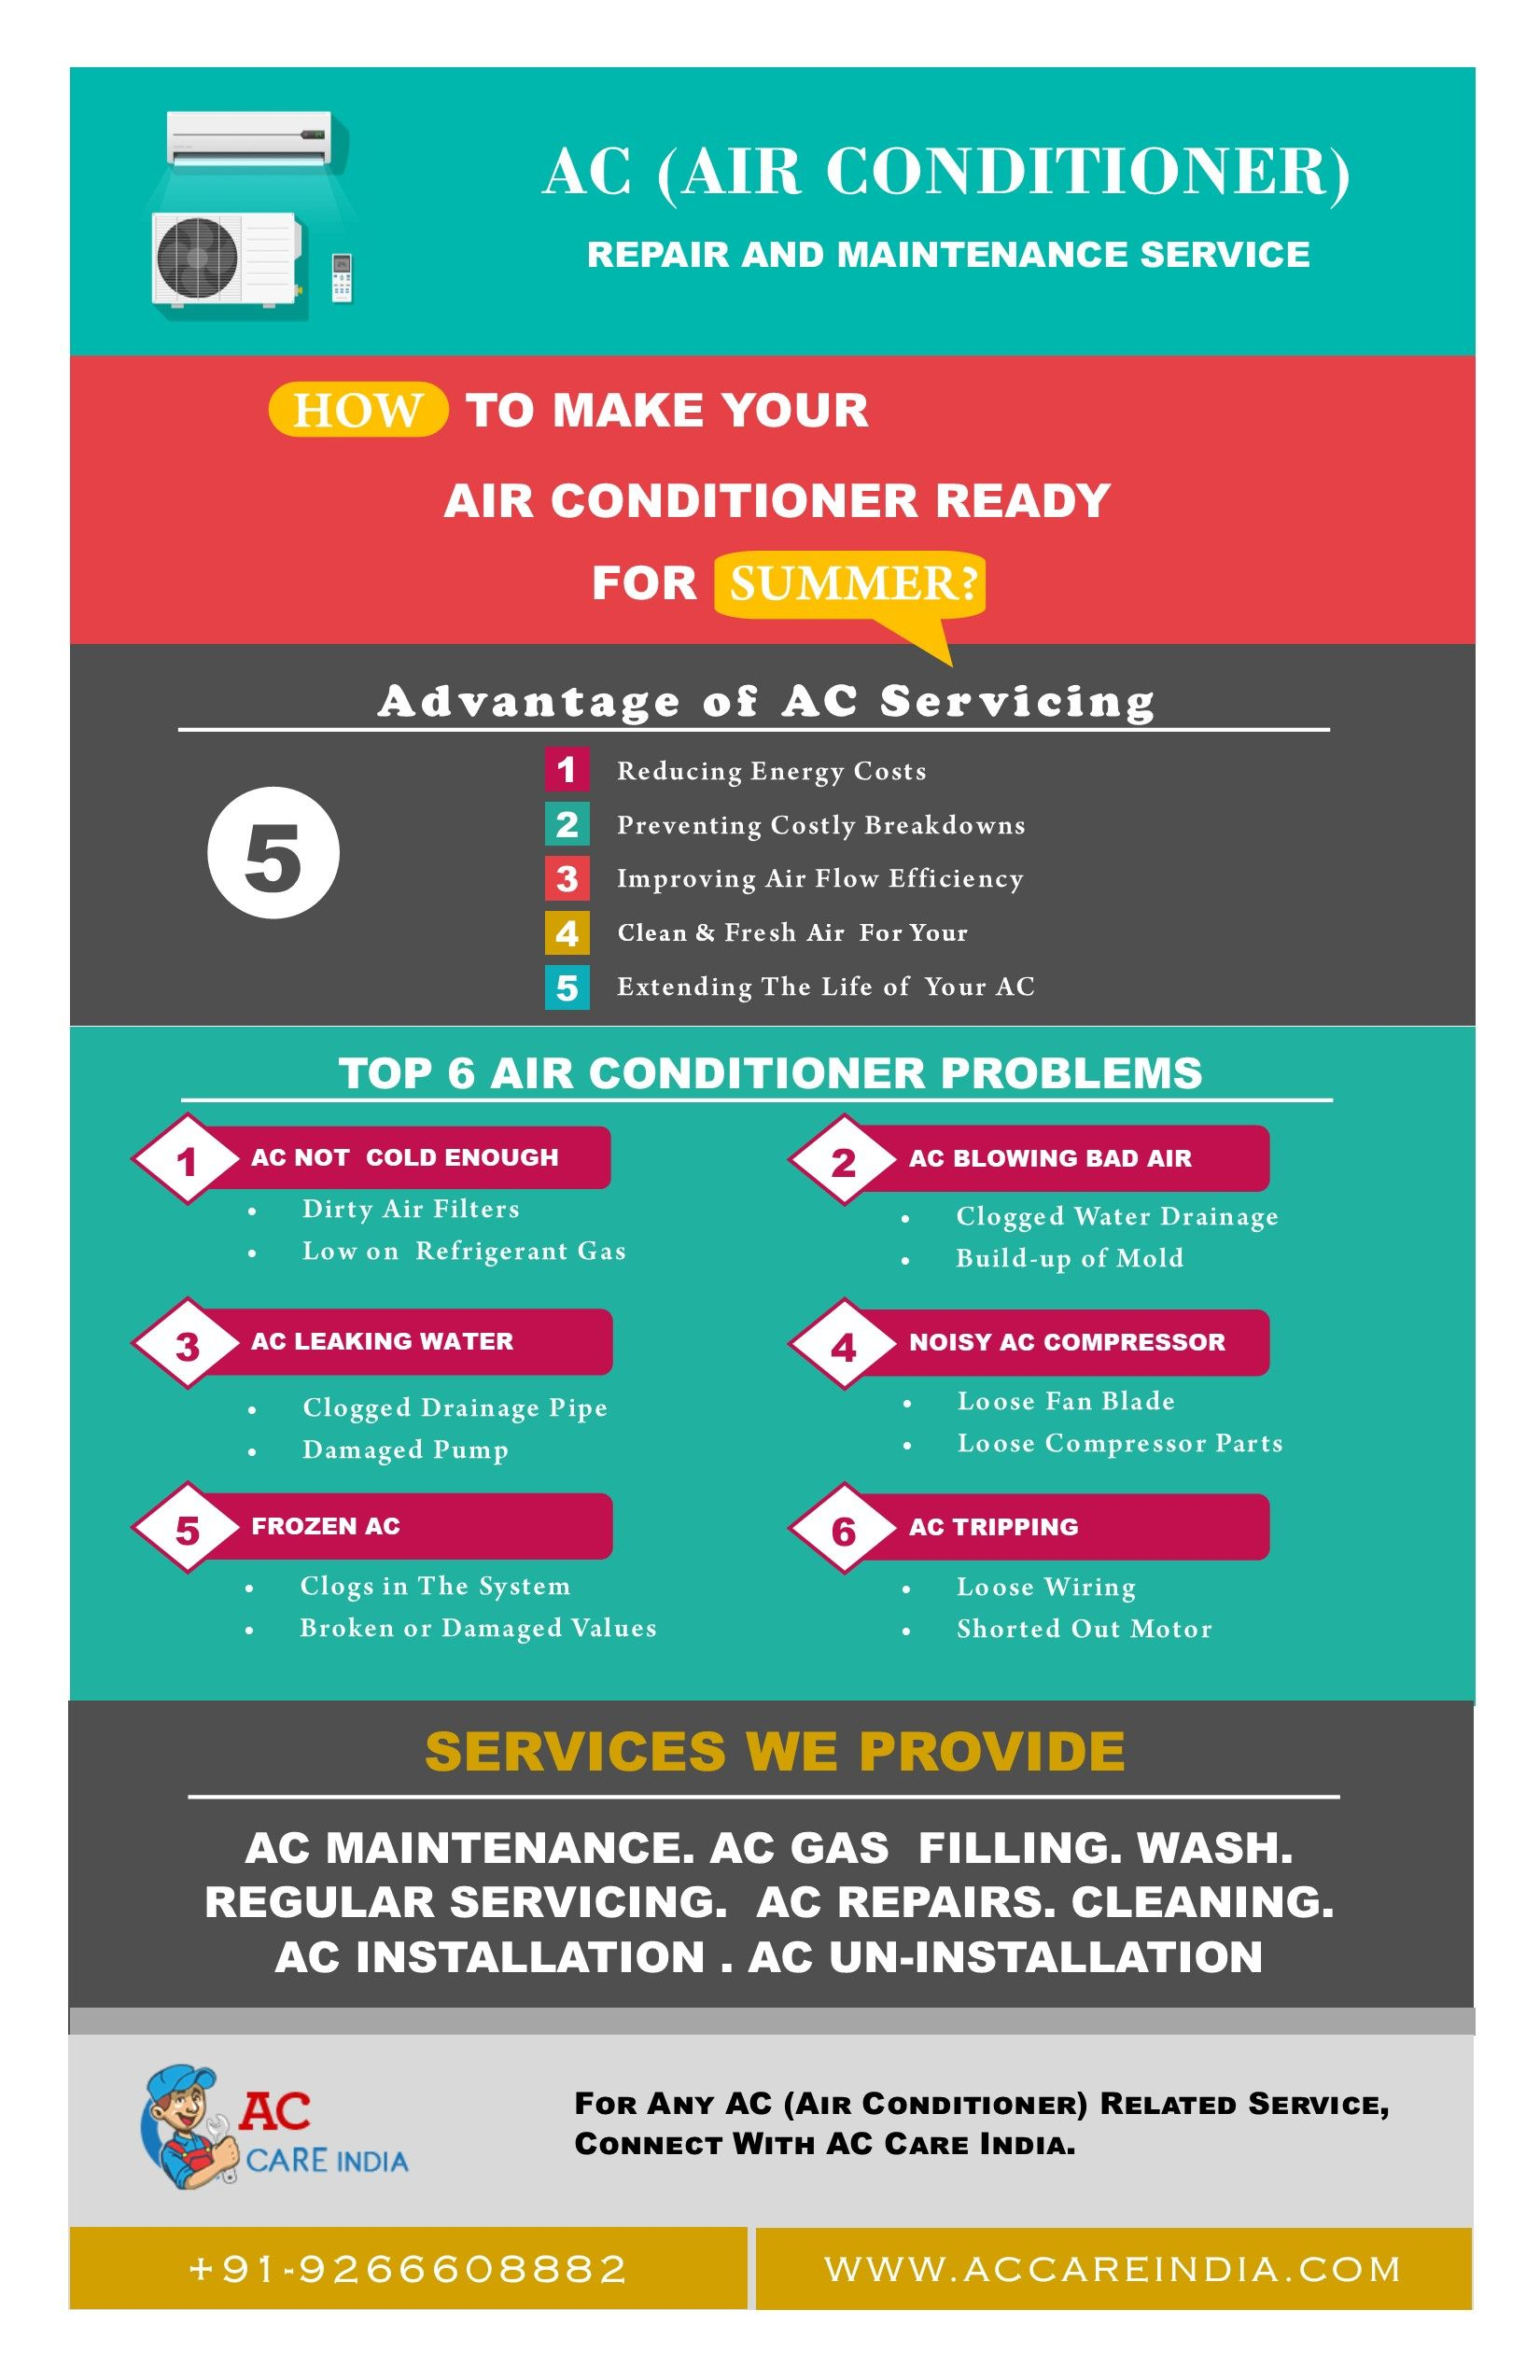 Get Your Air Conditioner Ready For Summer In 6 Simple Steps When